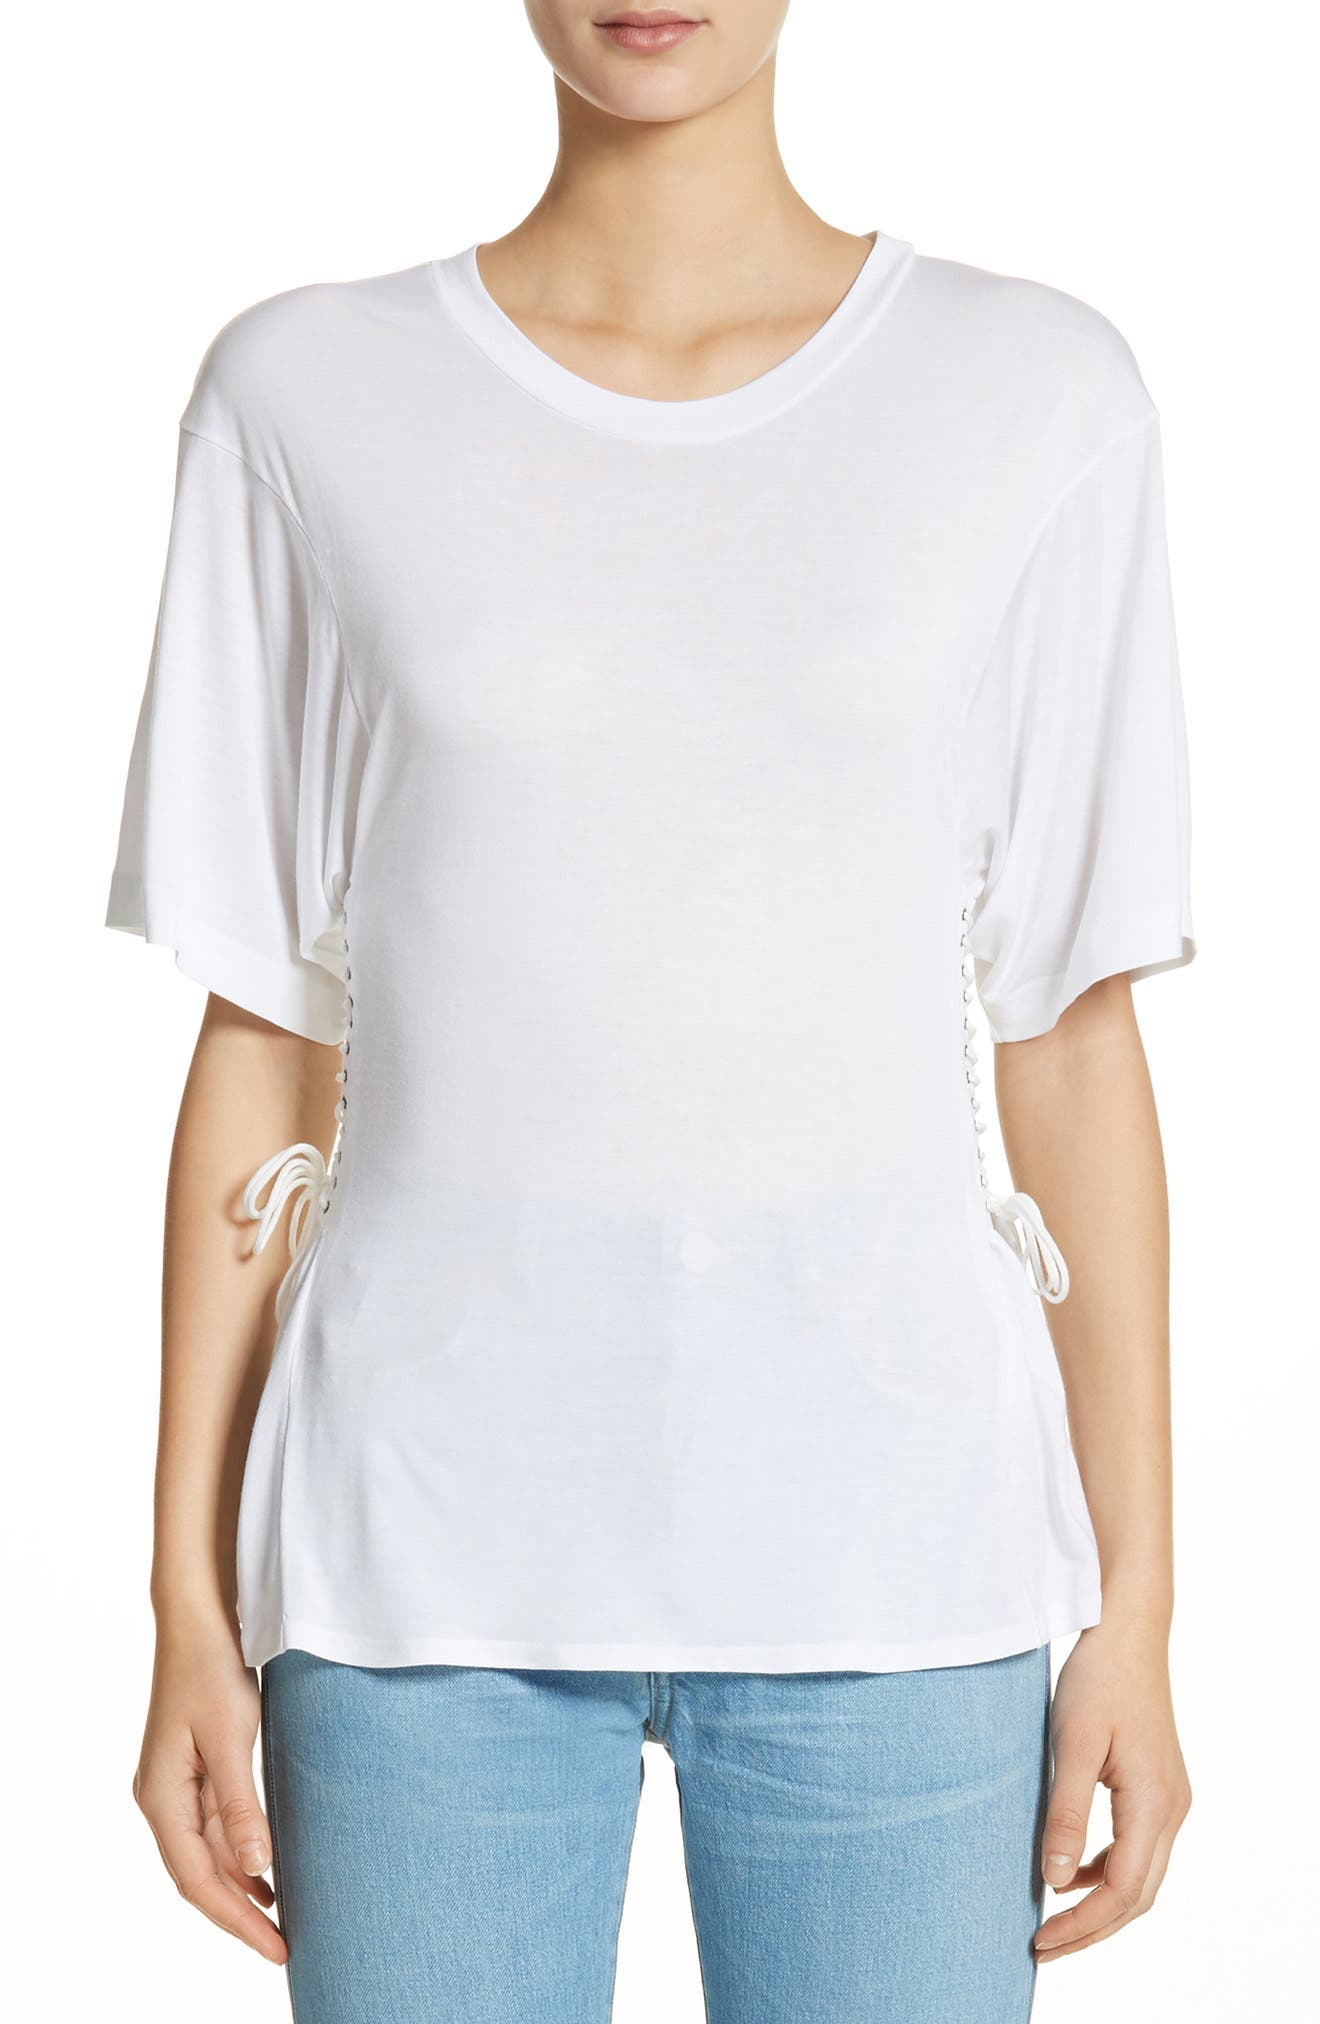 Main Image - Jean Atelier Axel Lace-Up Tee